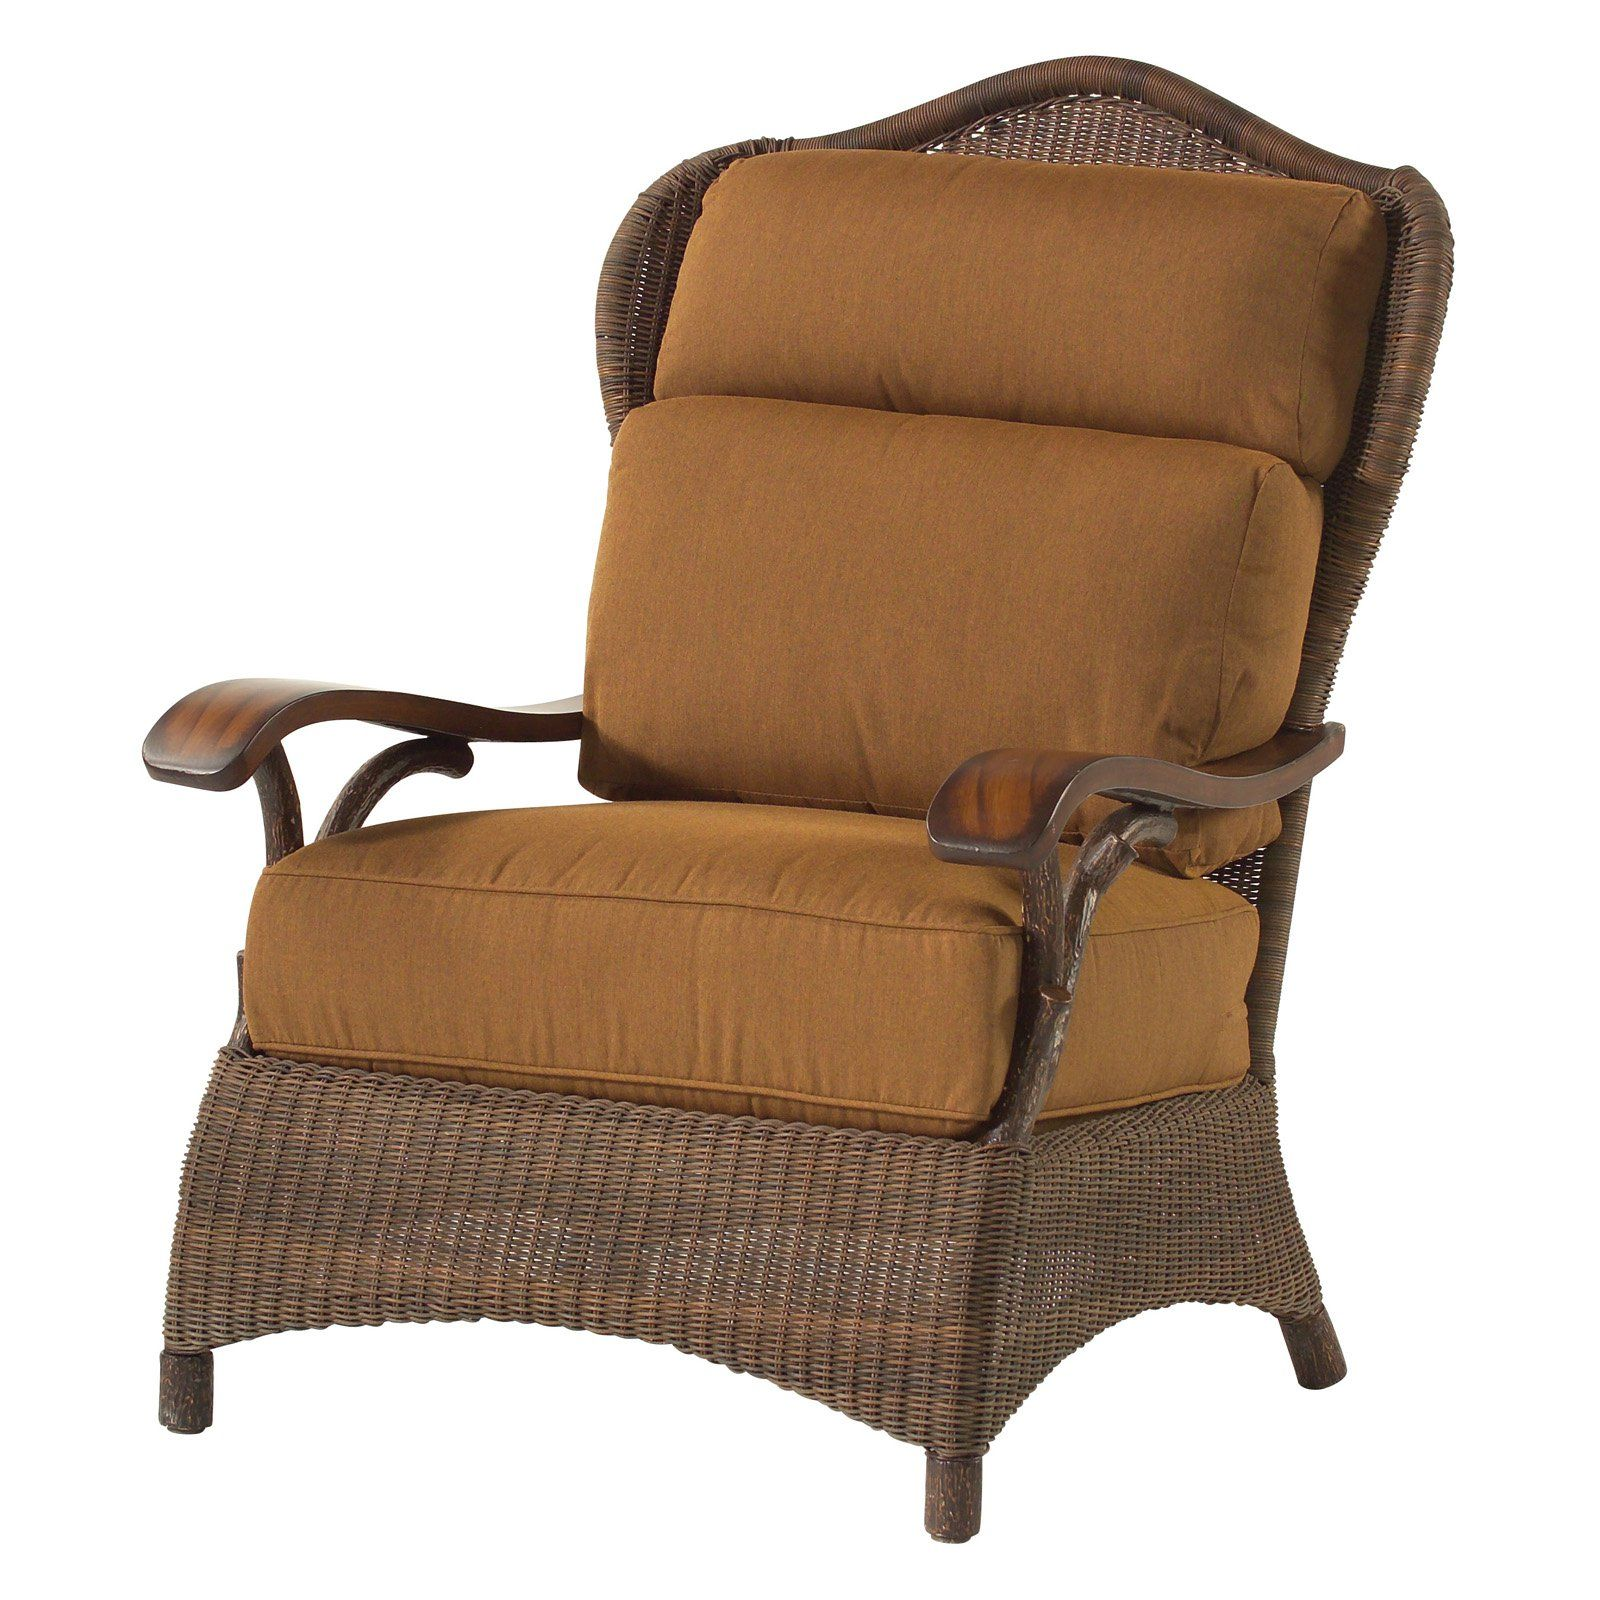 Outdoor Whitecraft by Woodard Chatham Run Lounge Chair ...